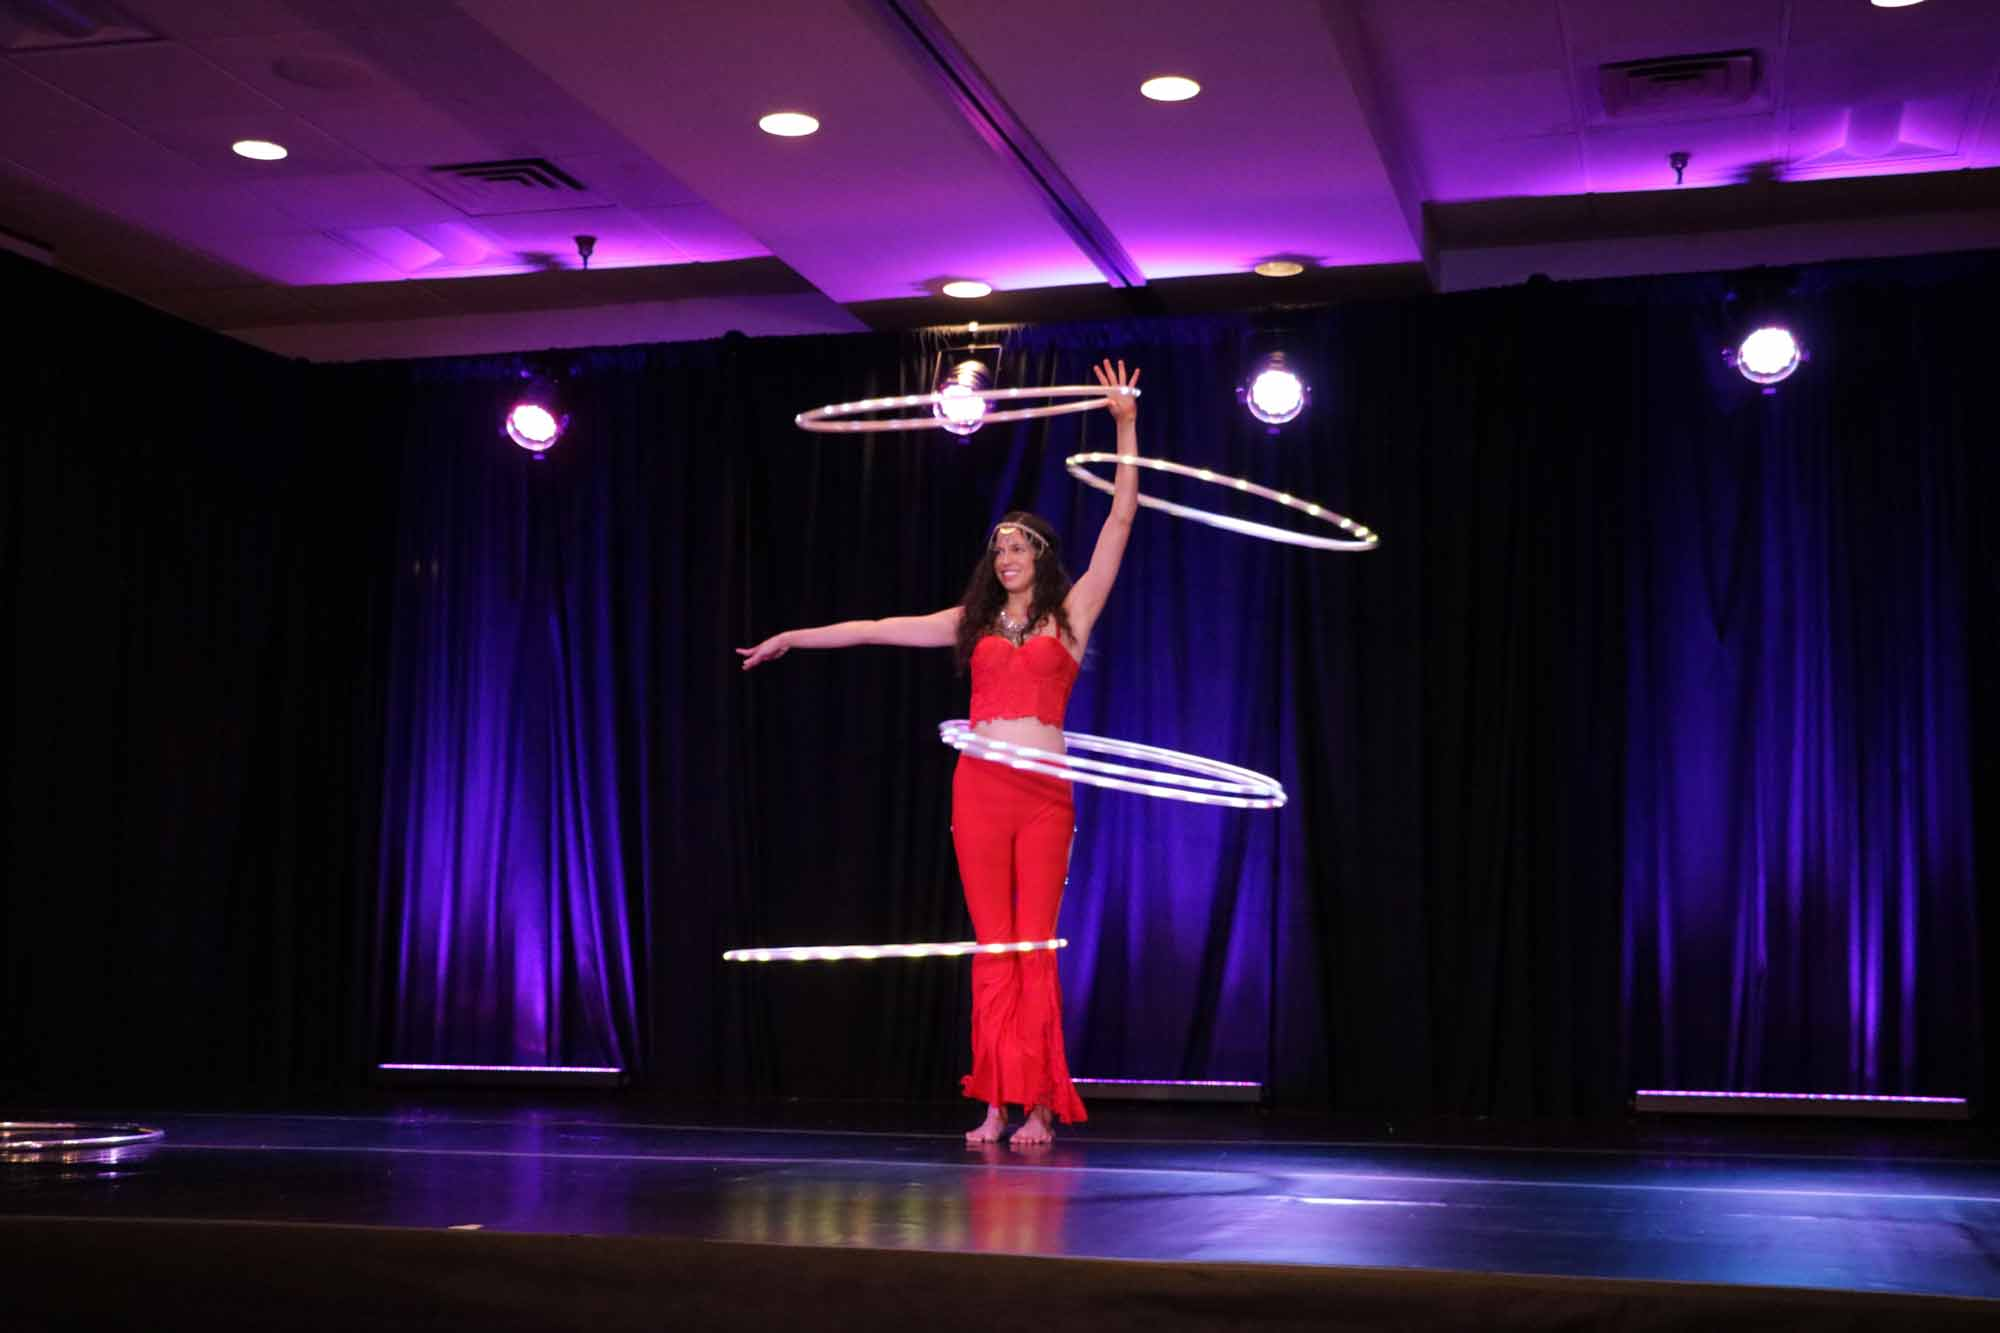 LED hula hooping